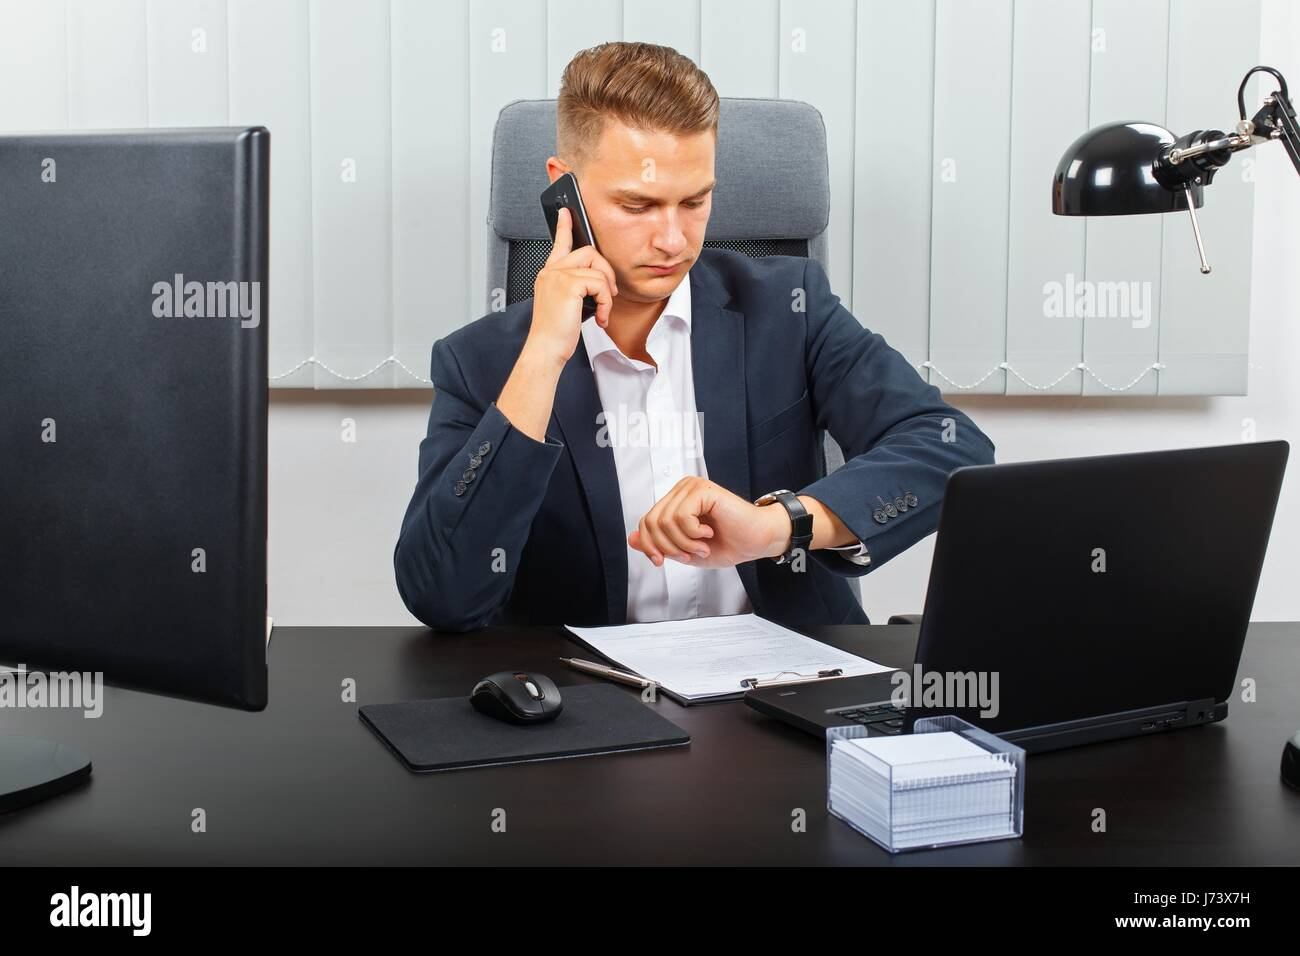 Frustrated office worker on the phone holding stock photo image - Frustrated Young Businessman Receiving An Unpleasant Phone Call Stock Image